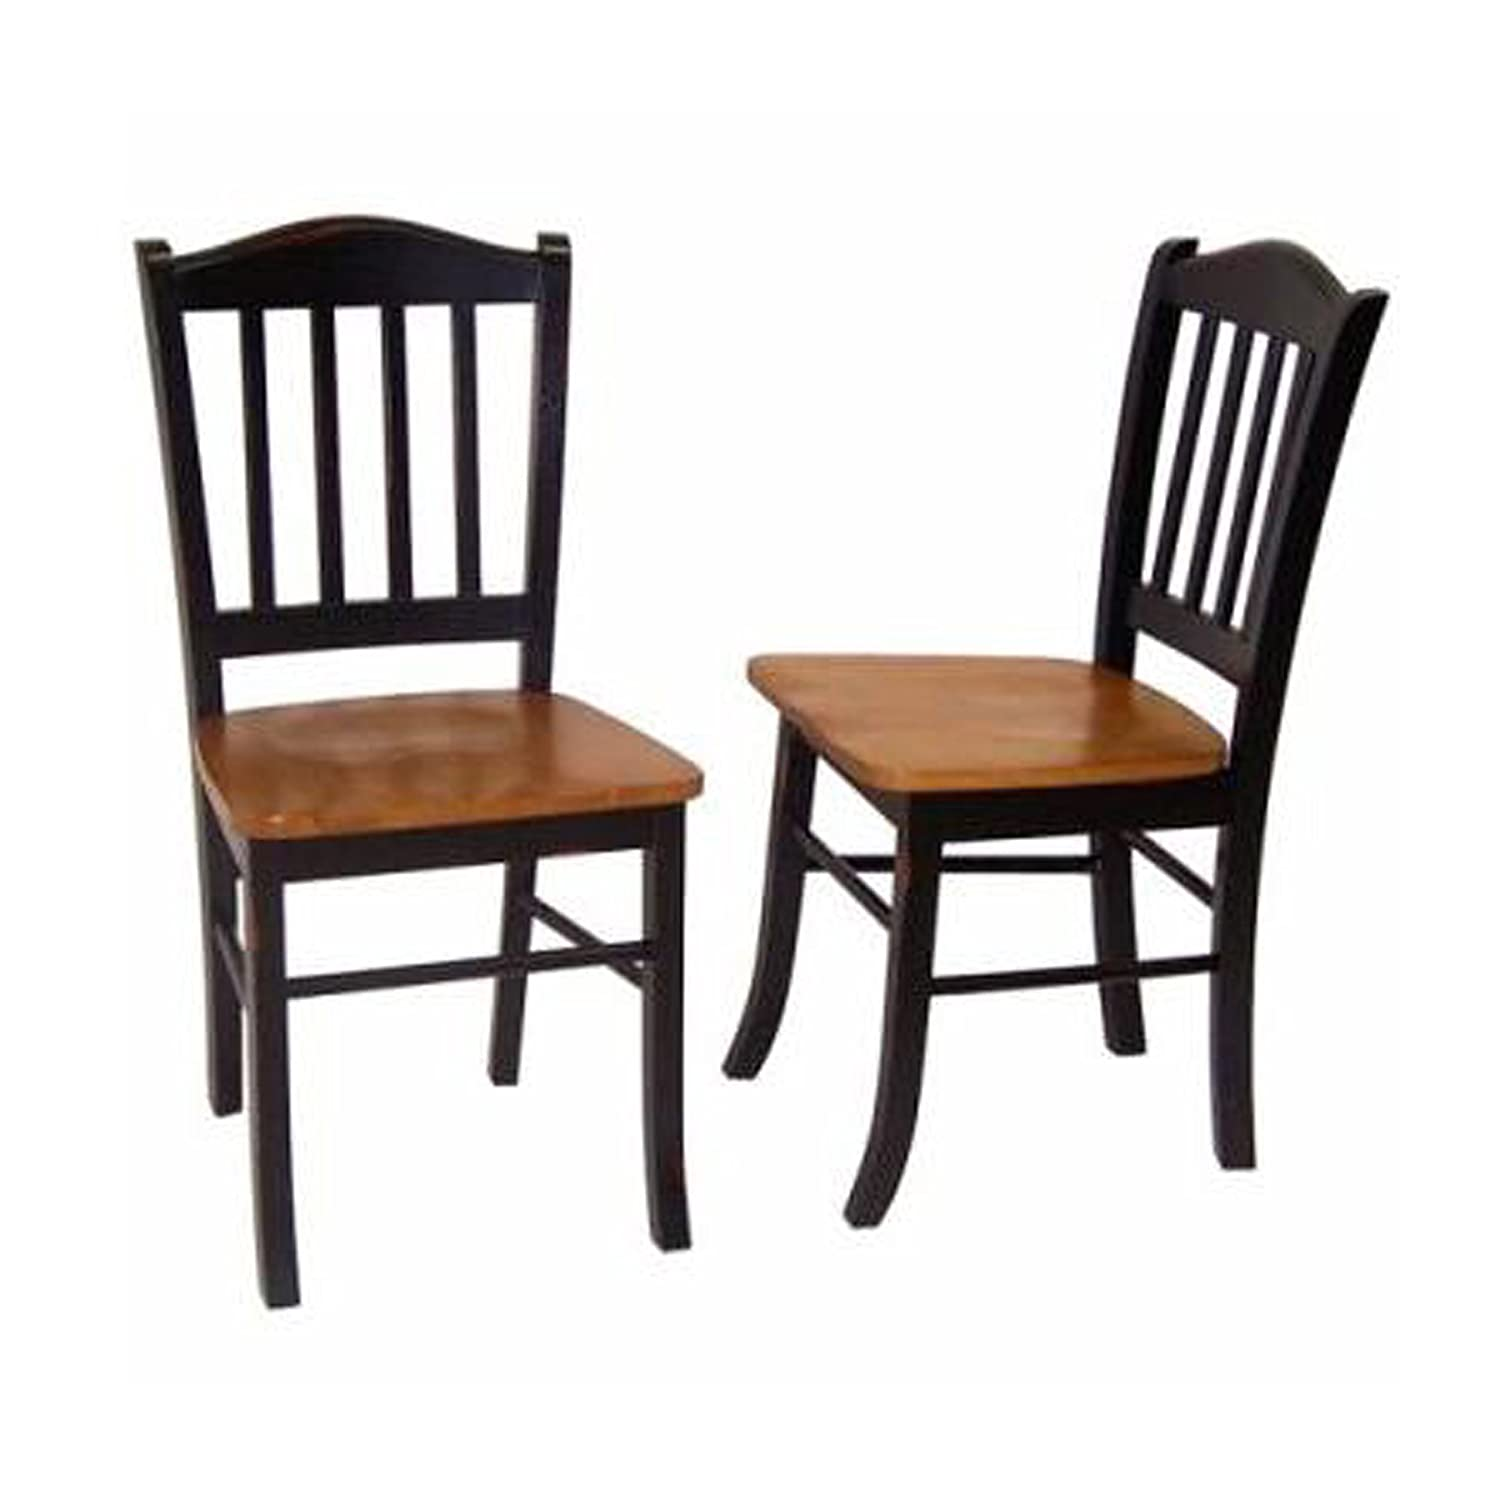 Amazon.com: Boraam 30536 Shaker Chair, Black/Oak, Set Of 2: Kitchen U0026 Dining